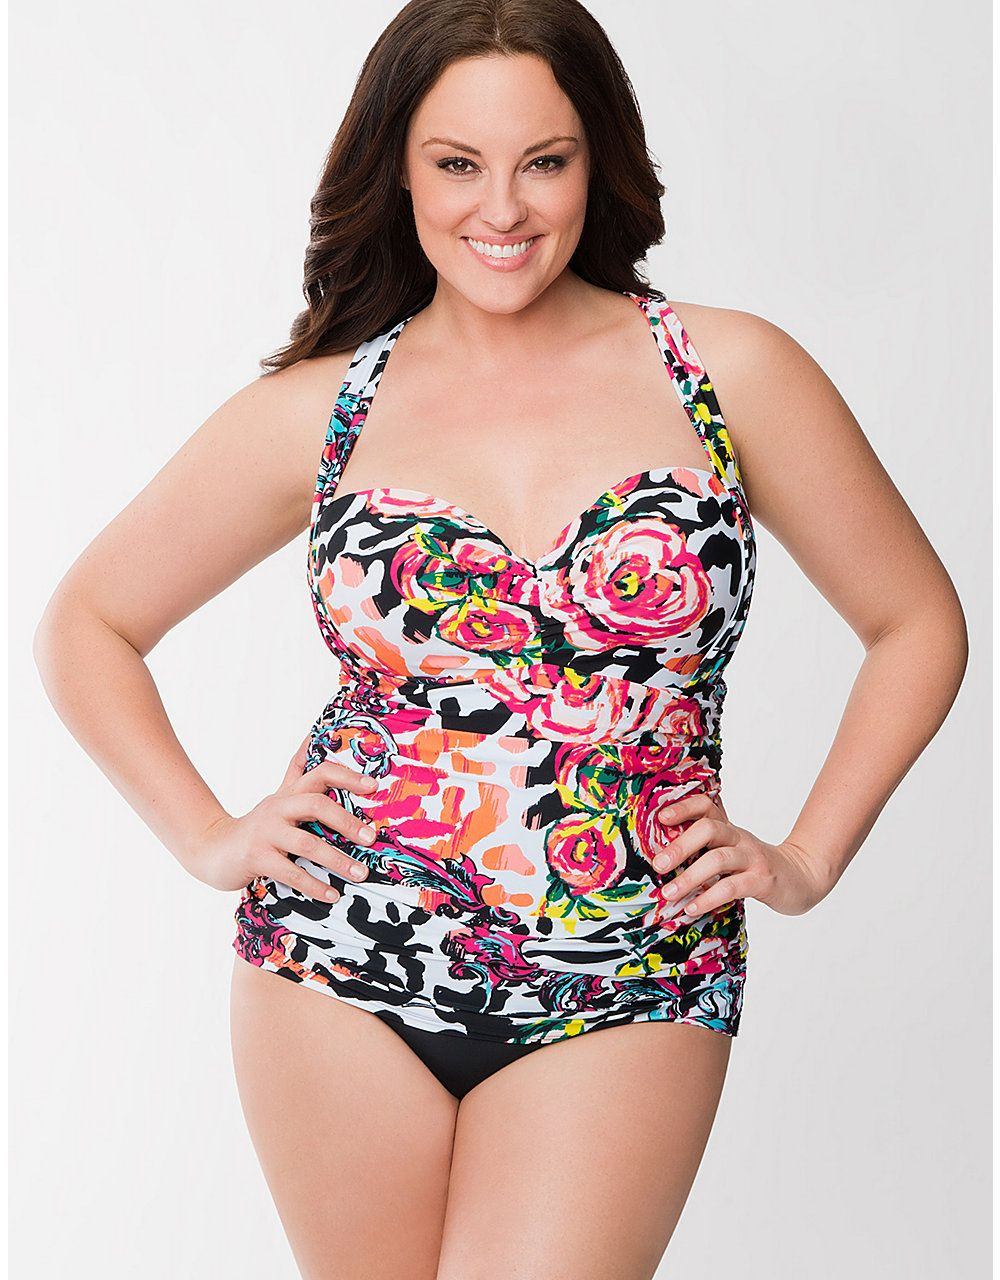 6b917f371a4a5 Floral Maillot Swimsuit With Built In Balconette Bra by Cacique ...